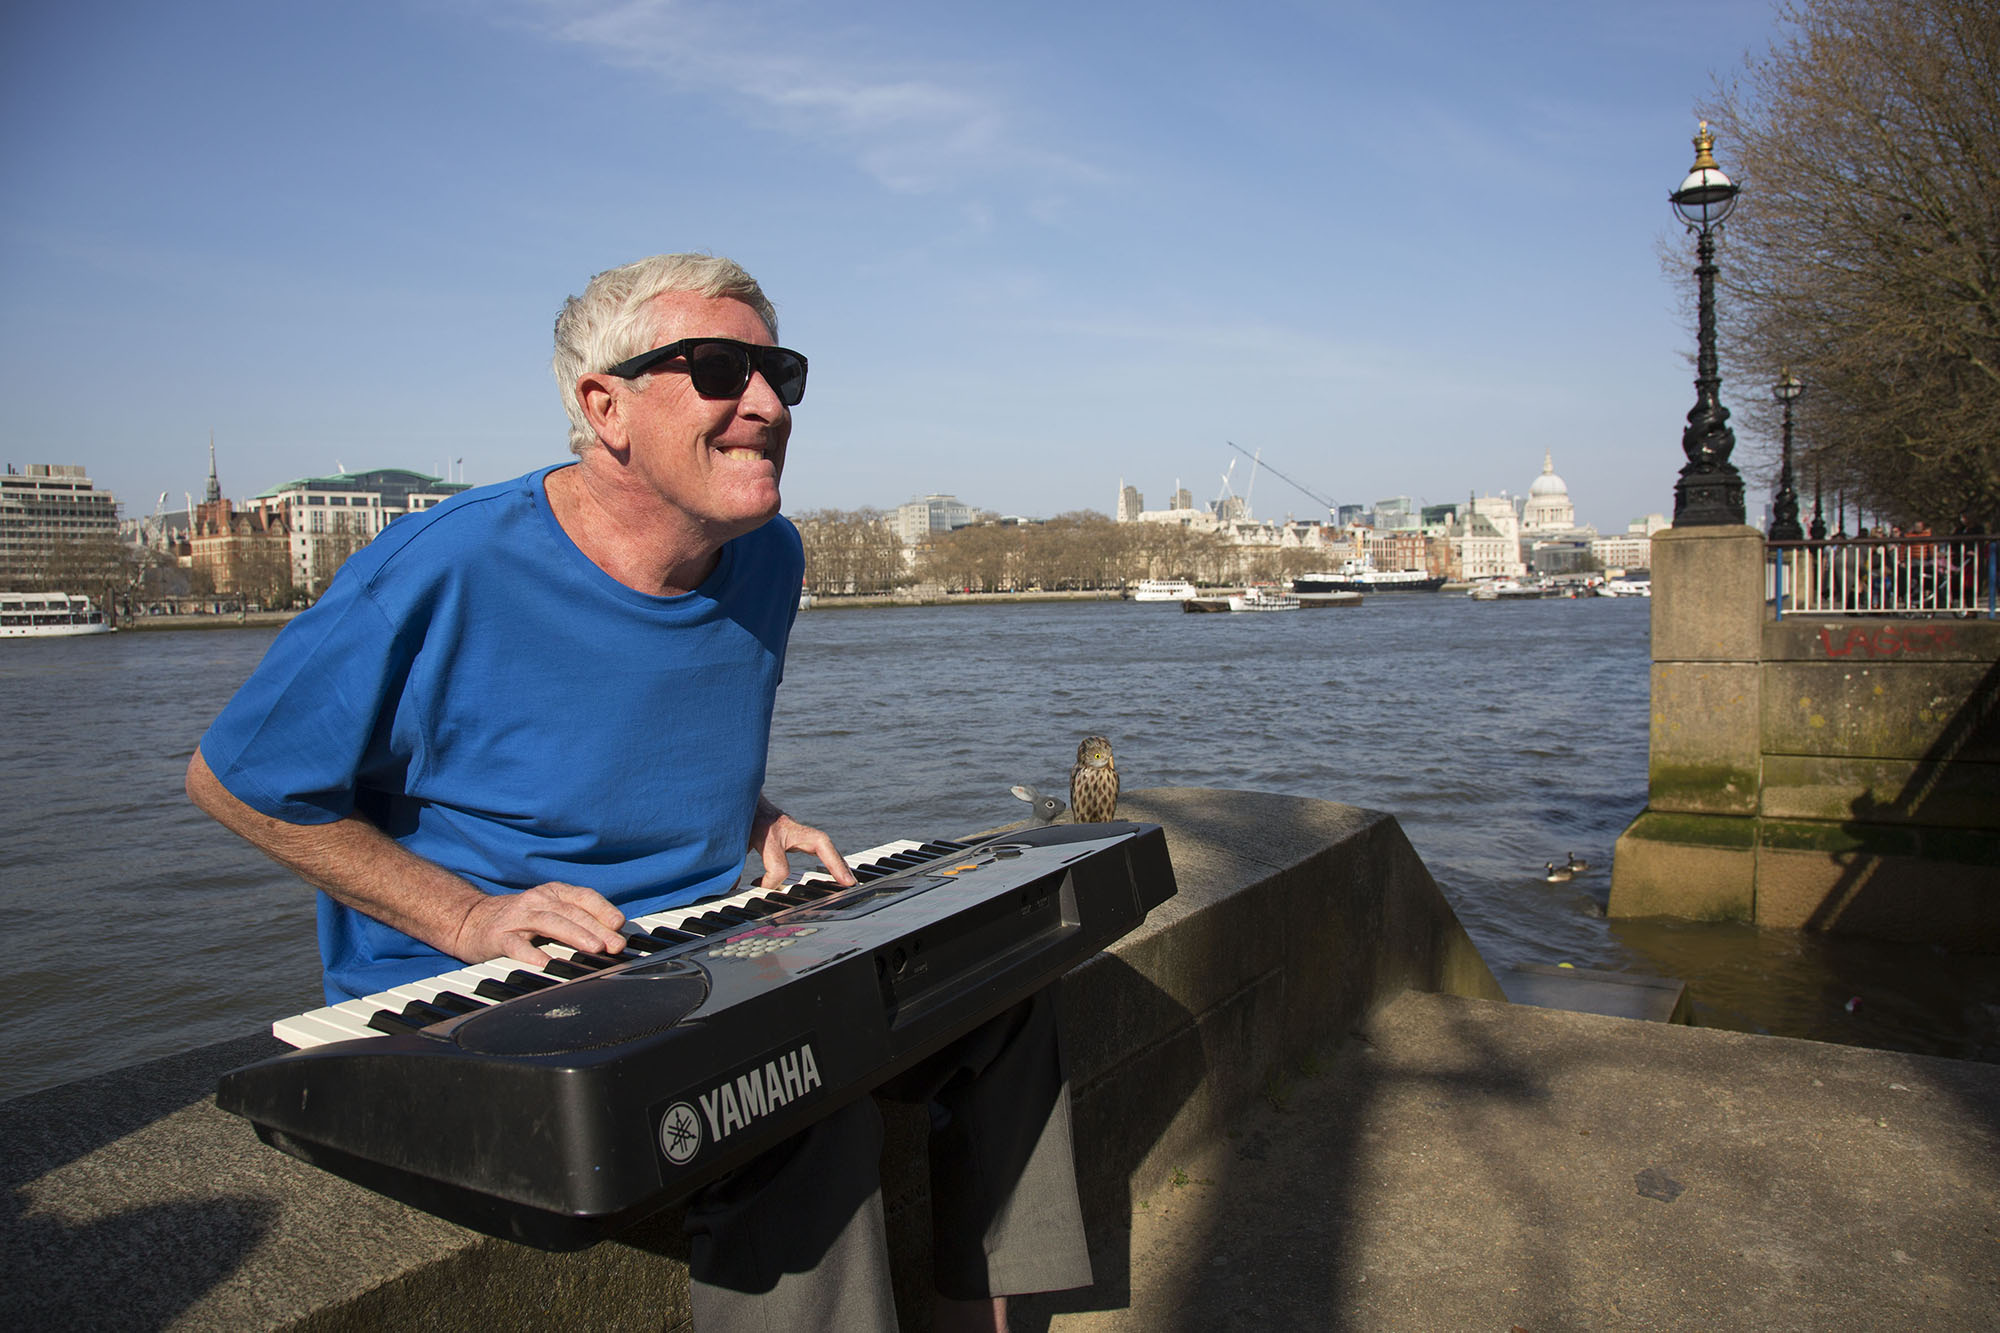 Busking regular playing an electronic organ singing at the riverside.